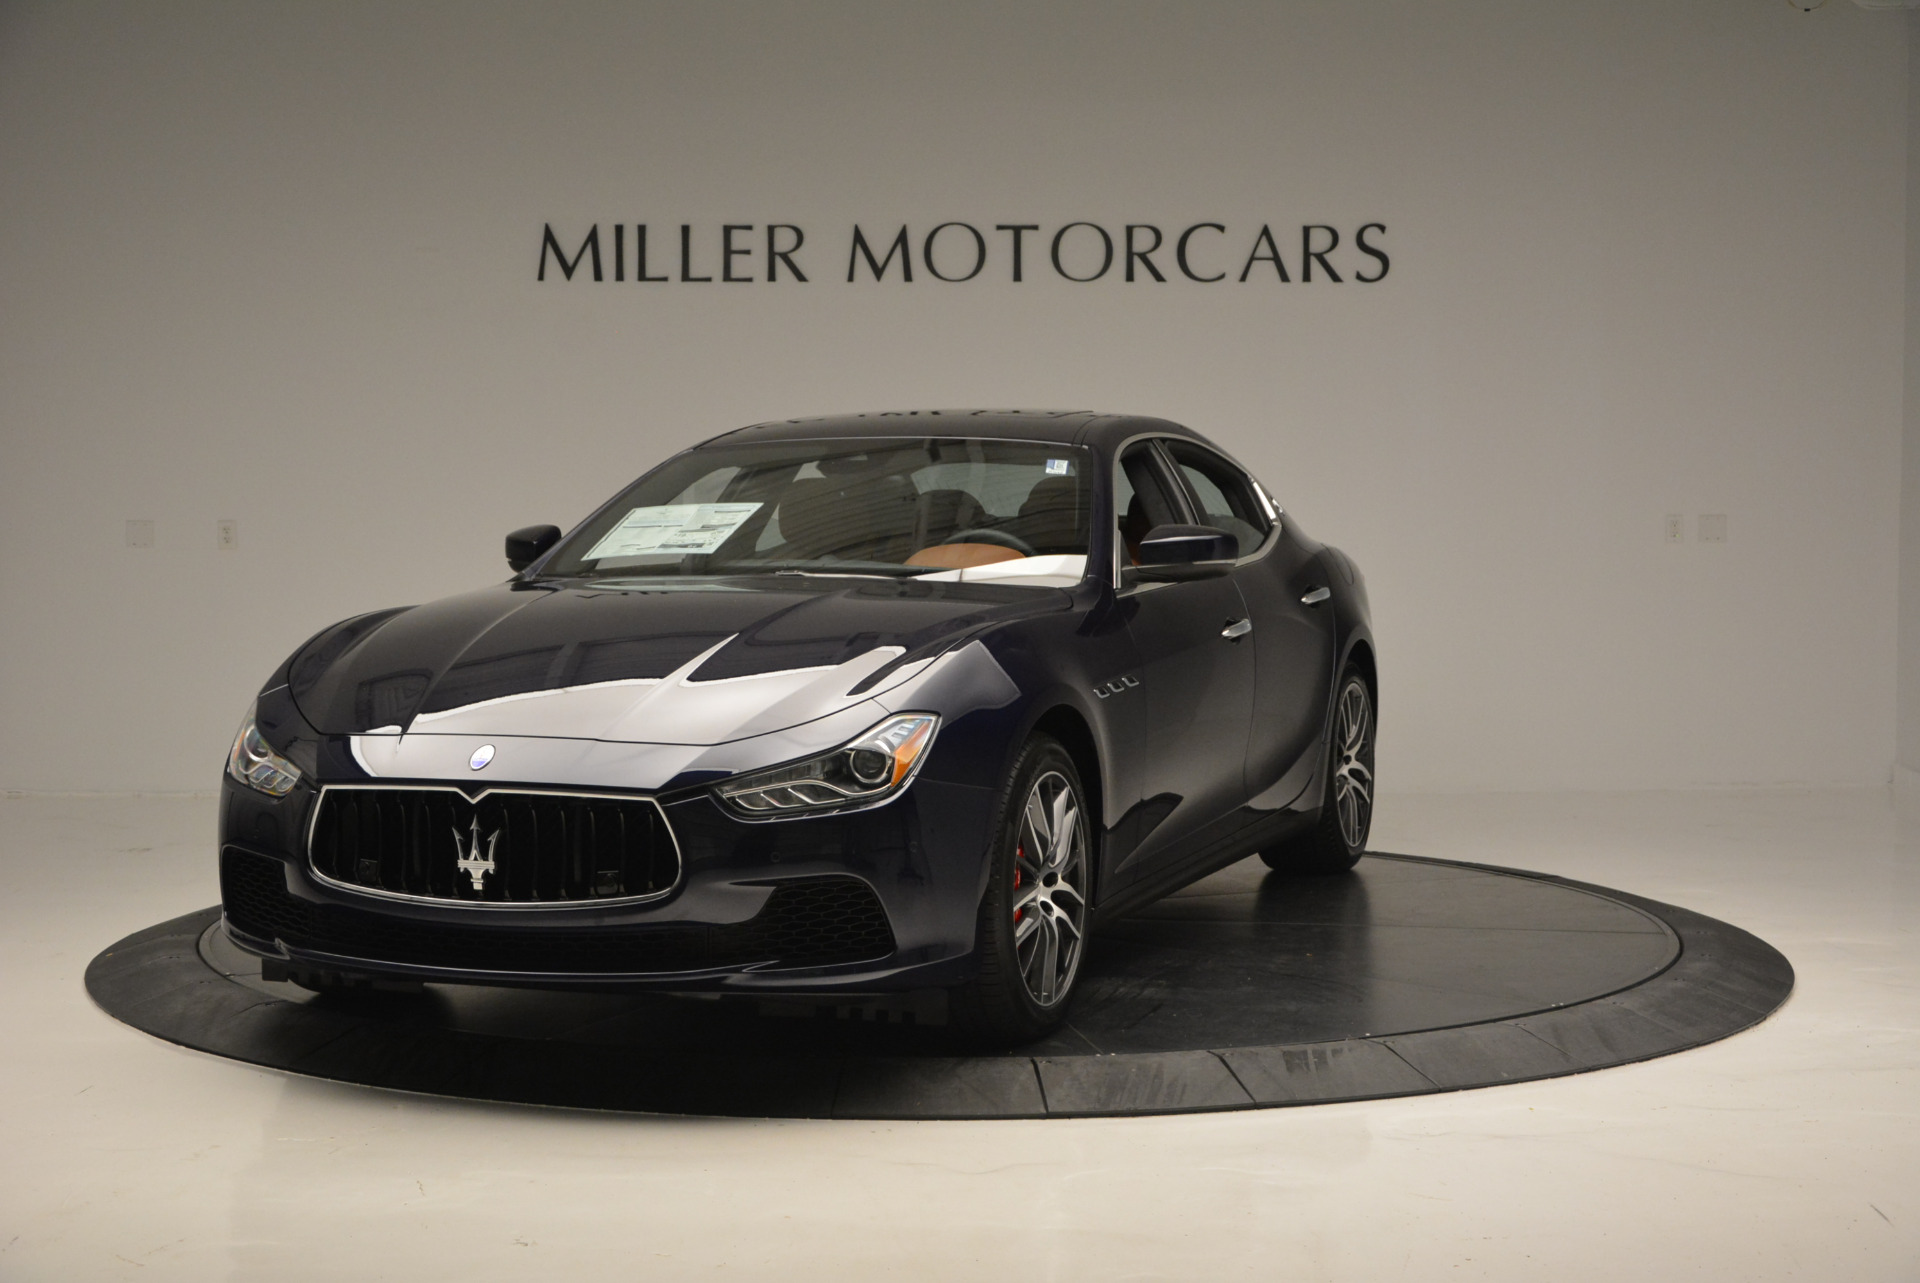 Used 2017 Maserati Ghibli S Q4 - EX Loaner for sale Sold at Bugatti of Greenwich in Greenwich CT 06830 1